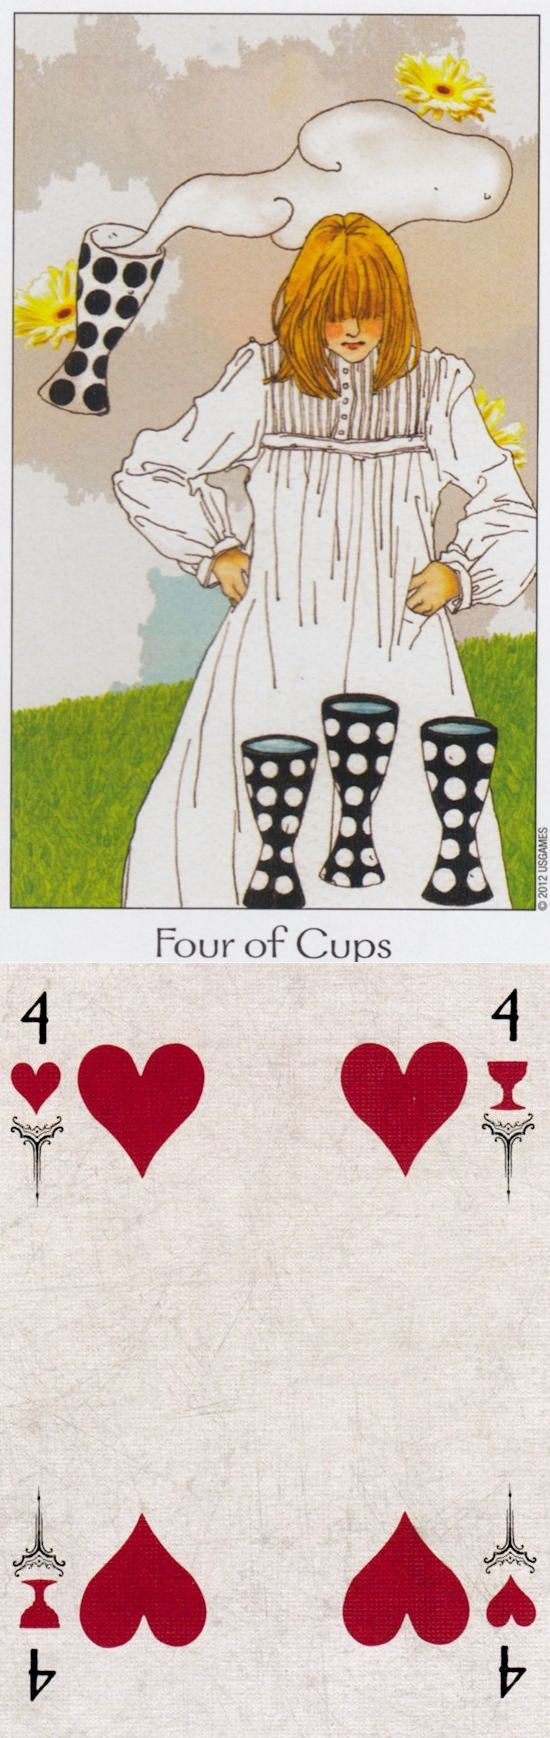 Four of Cups: apathy and aloofness (reverse). Dreaming Way Tarot deck and Arcana Tarot Tarot deck: free angel card reading yes or no, parrot reading vs single card tarot. The best tarot reading for beginners and tarot decks for sale. #oldways #spells #iosapplication #selfempowerment #halloween #tarotcardsforbeginners